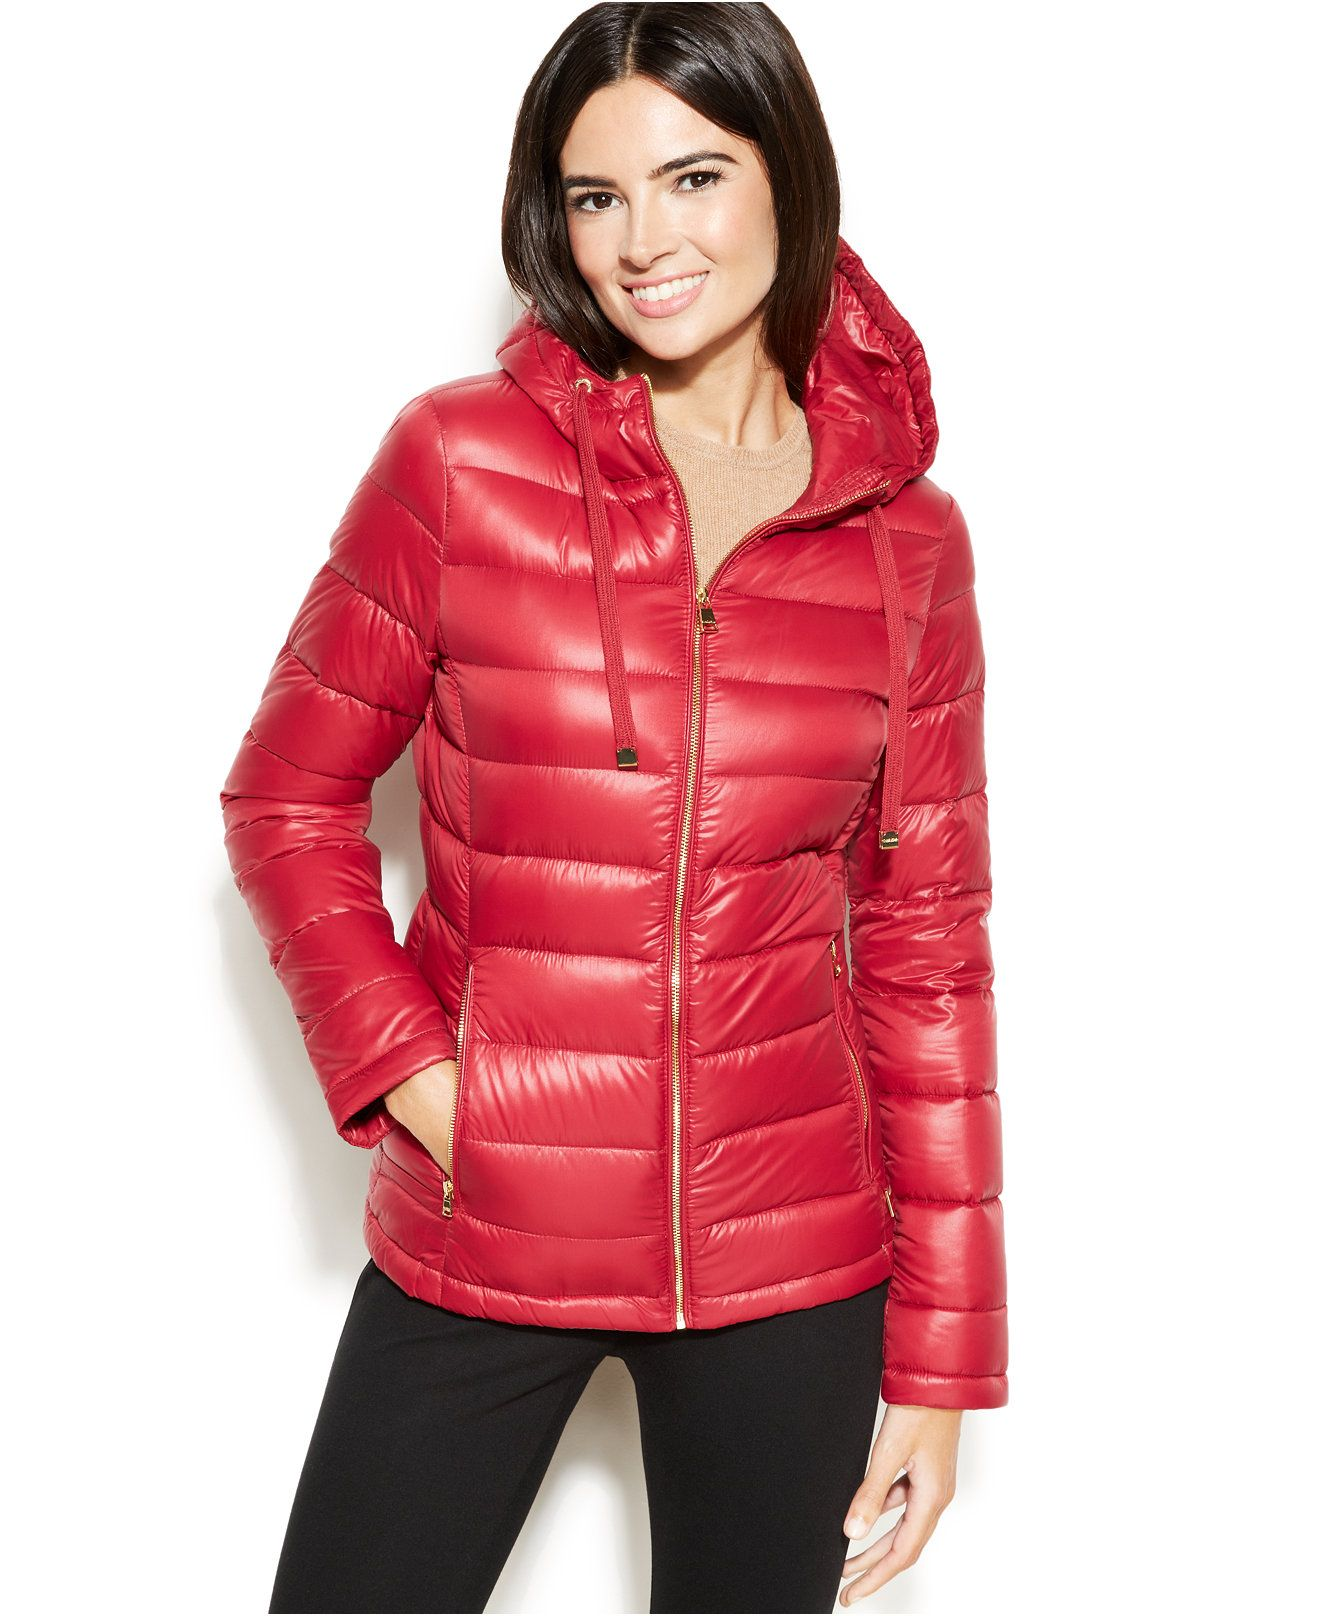 Change Your Look In An Instant With Calvin Klein S Packable Quilted Puffer Its Lightweight Fill Keeps You Warm Without The Weight [ 1616 x 1320 Pixel ]